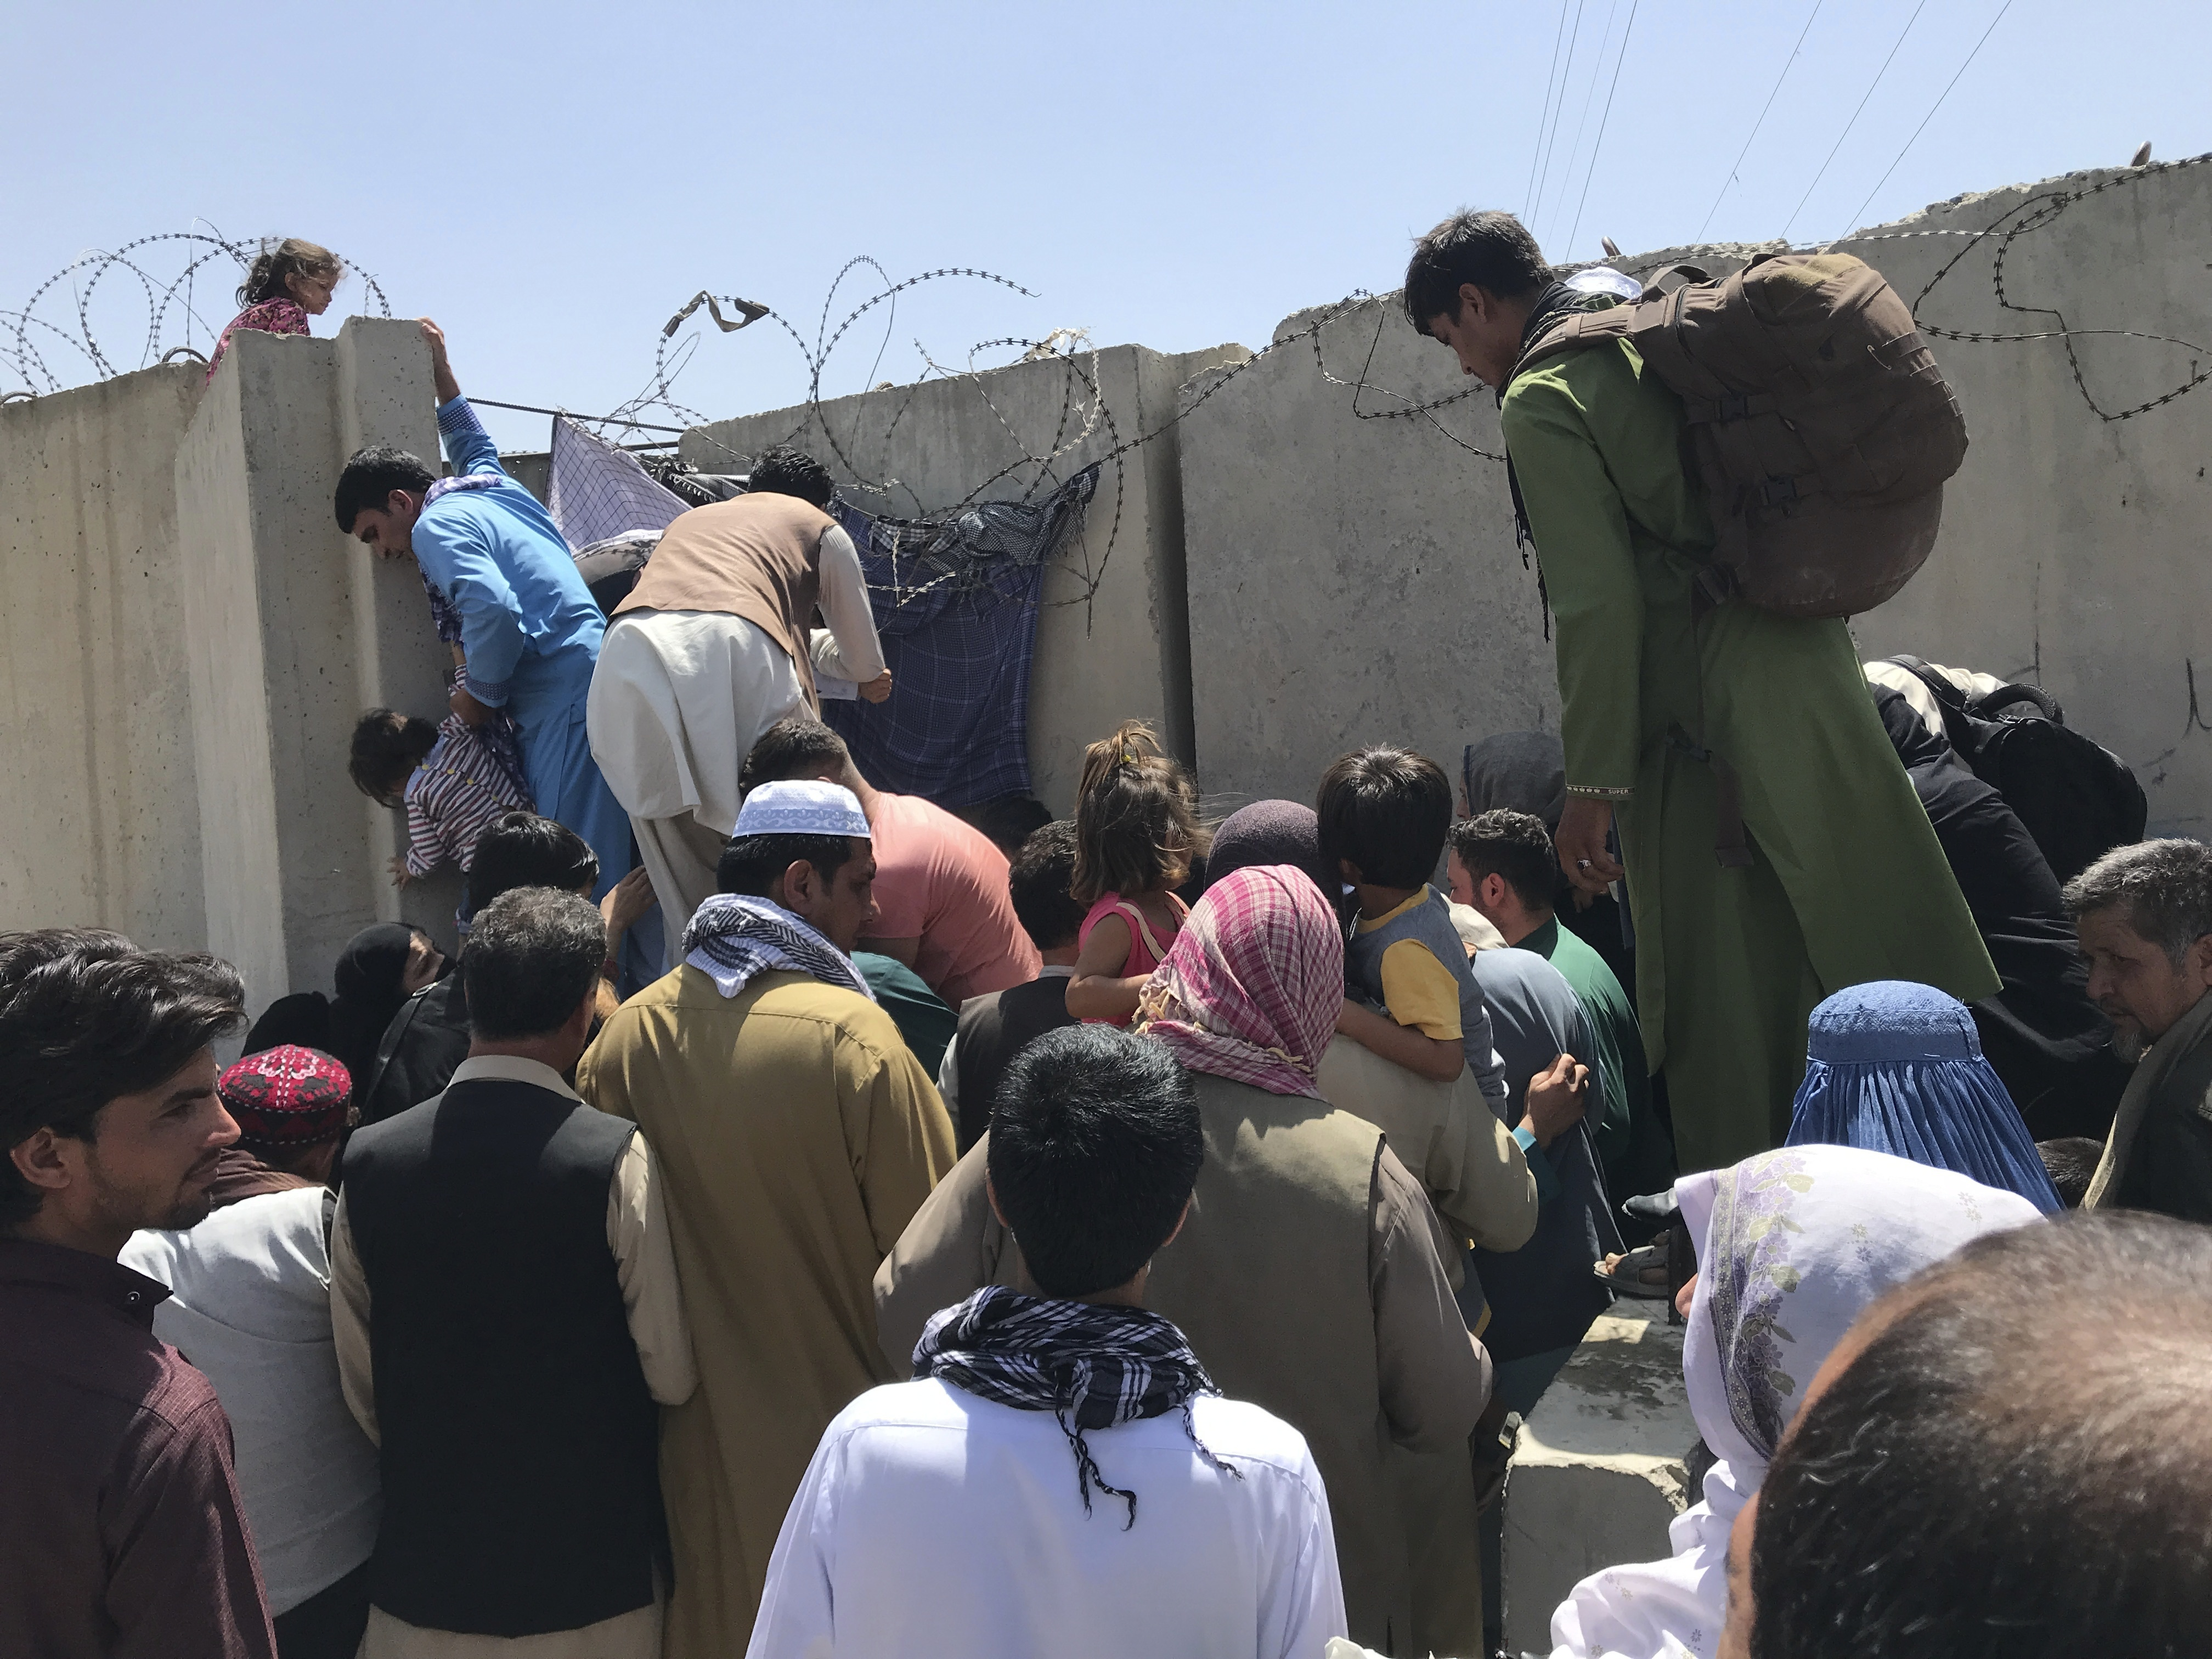 People struggle to cross the boundary wall of Hamid Karzai International Airport in Kabul.